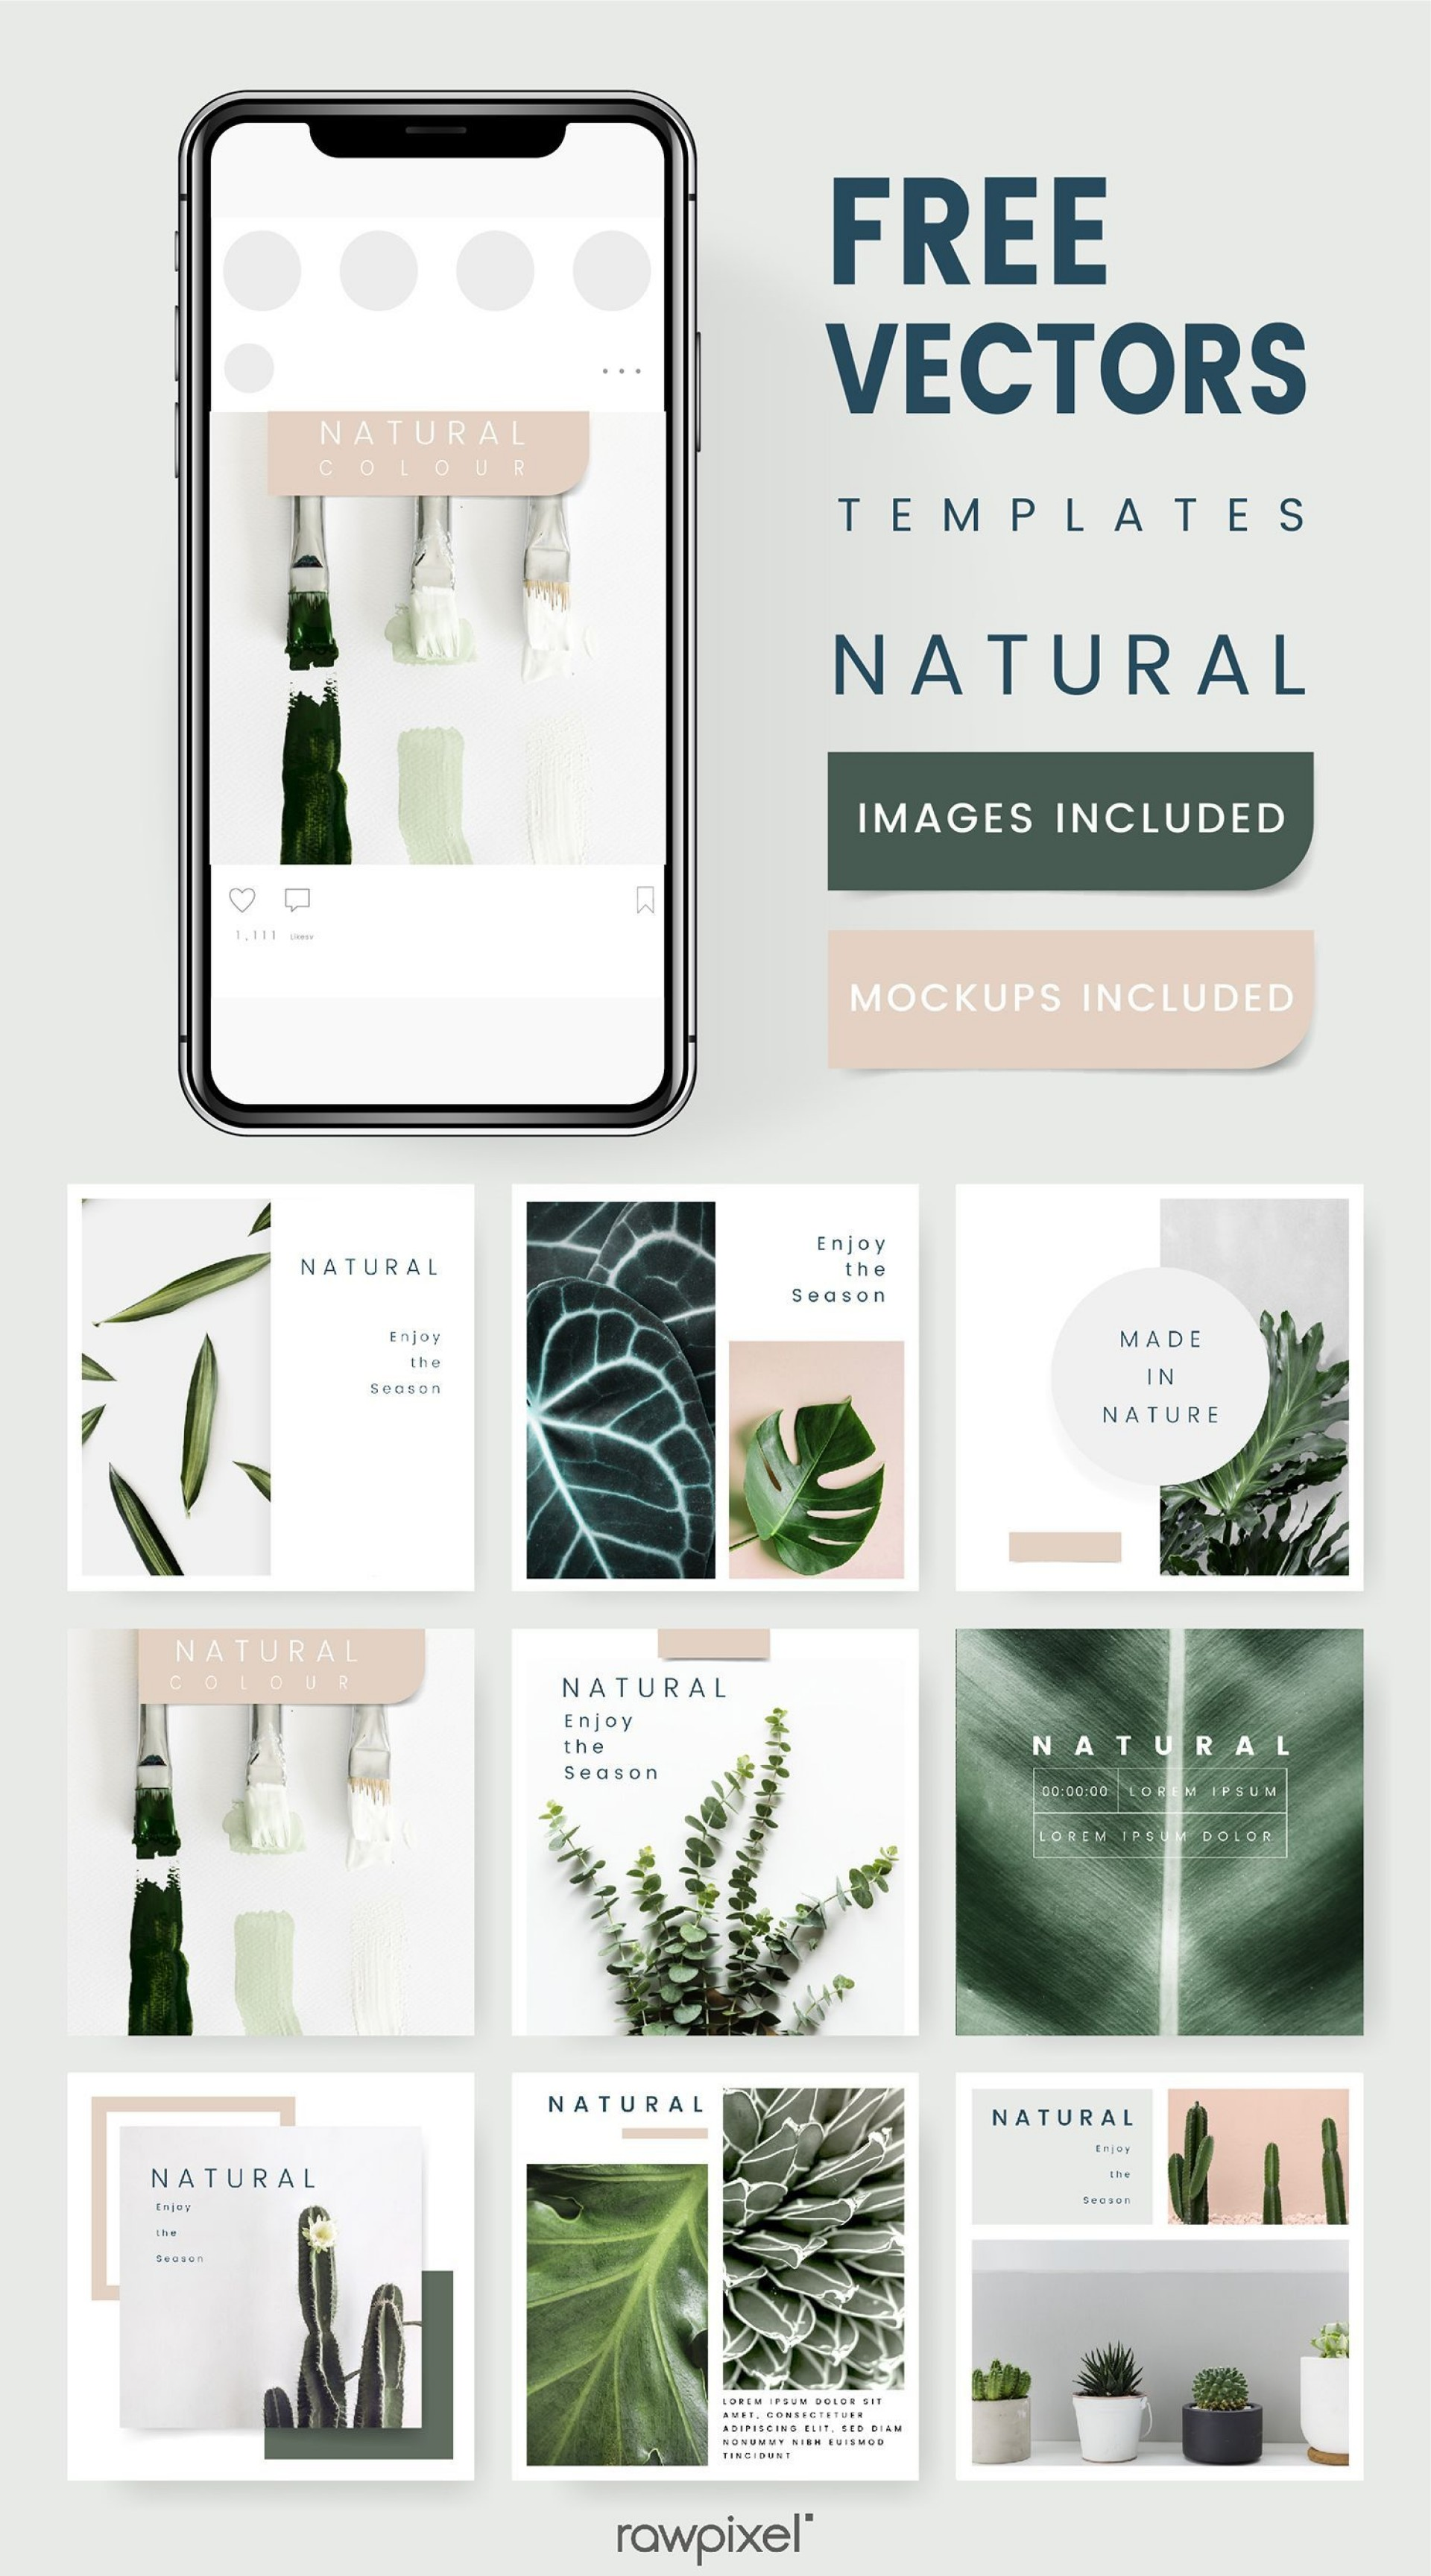 004 Impressive Free Social Media Template Inspiration  Templates Website Design Post Download For Powerpoint1920